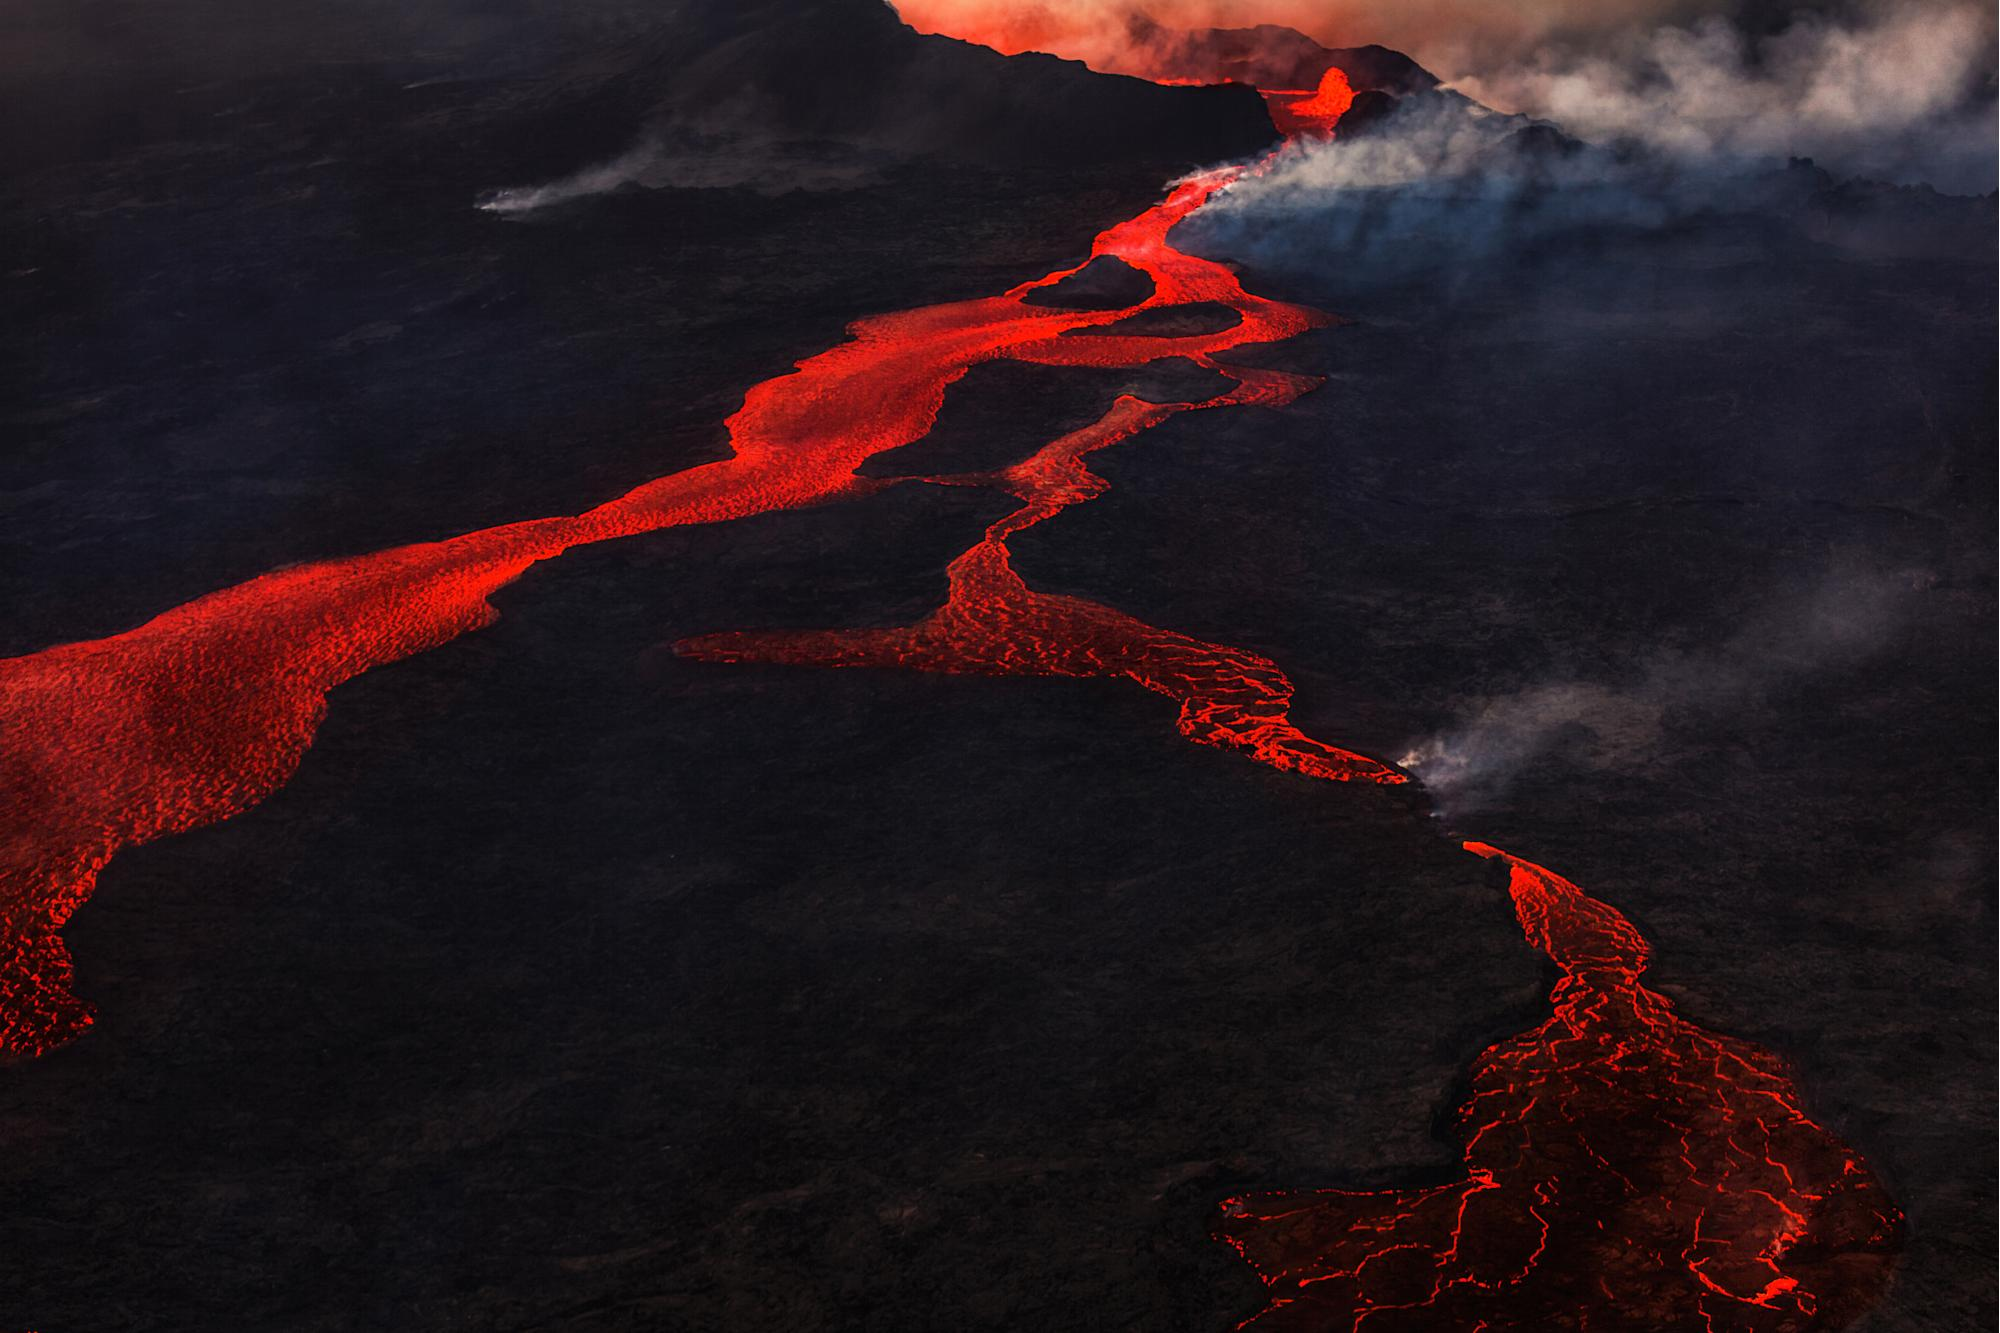 Earth has a 'pulse' every 27.5 million years that brings eruptions and mass extinctions